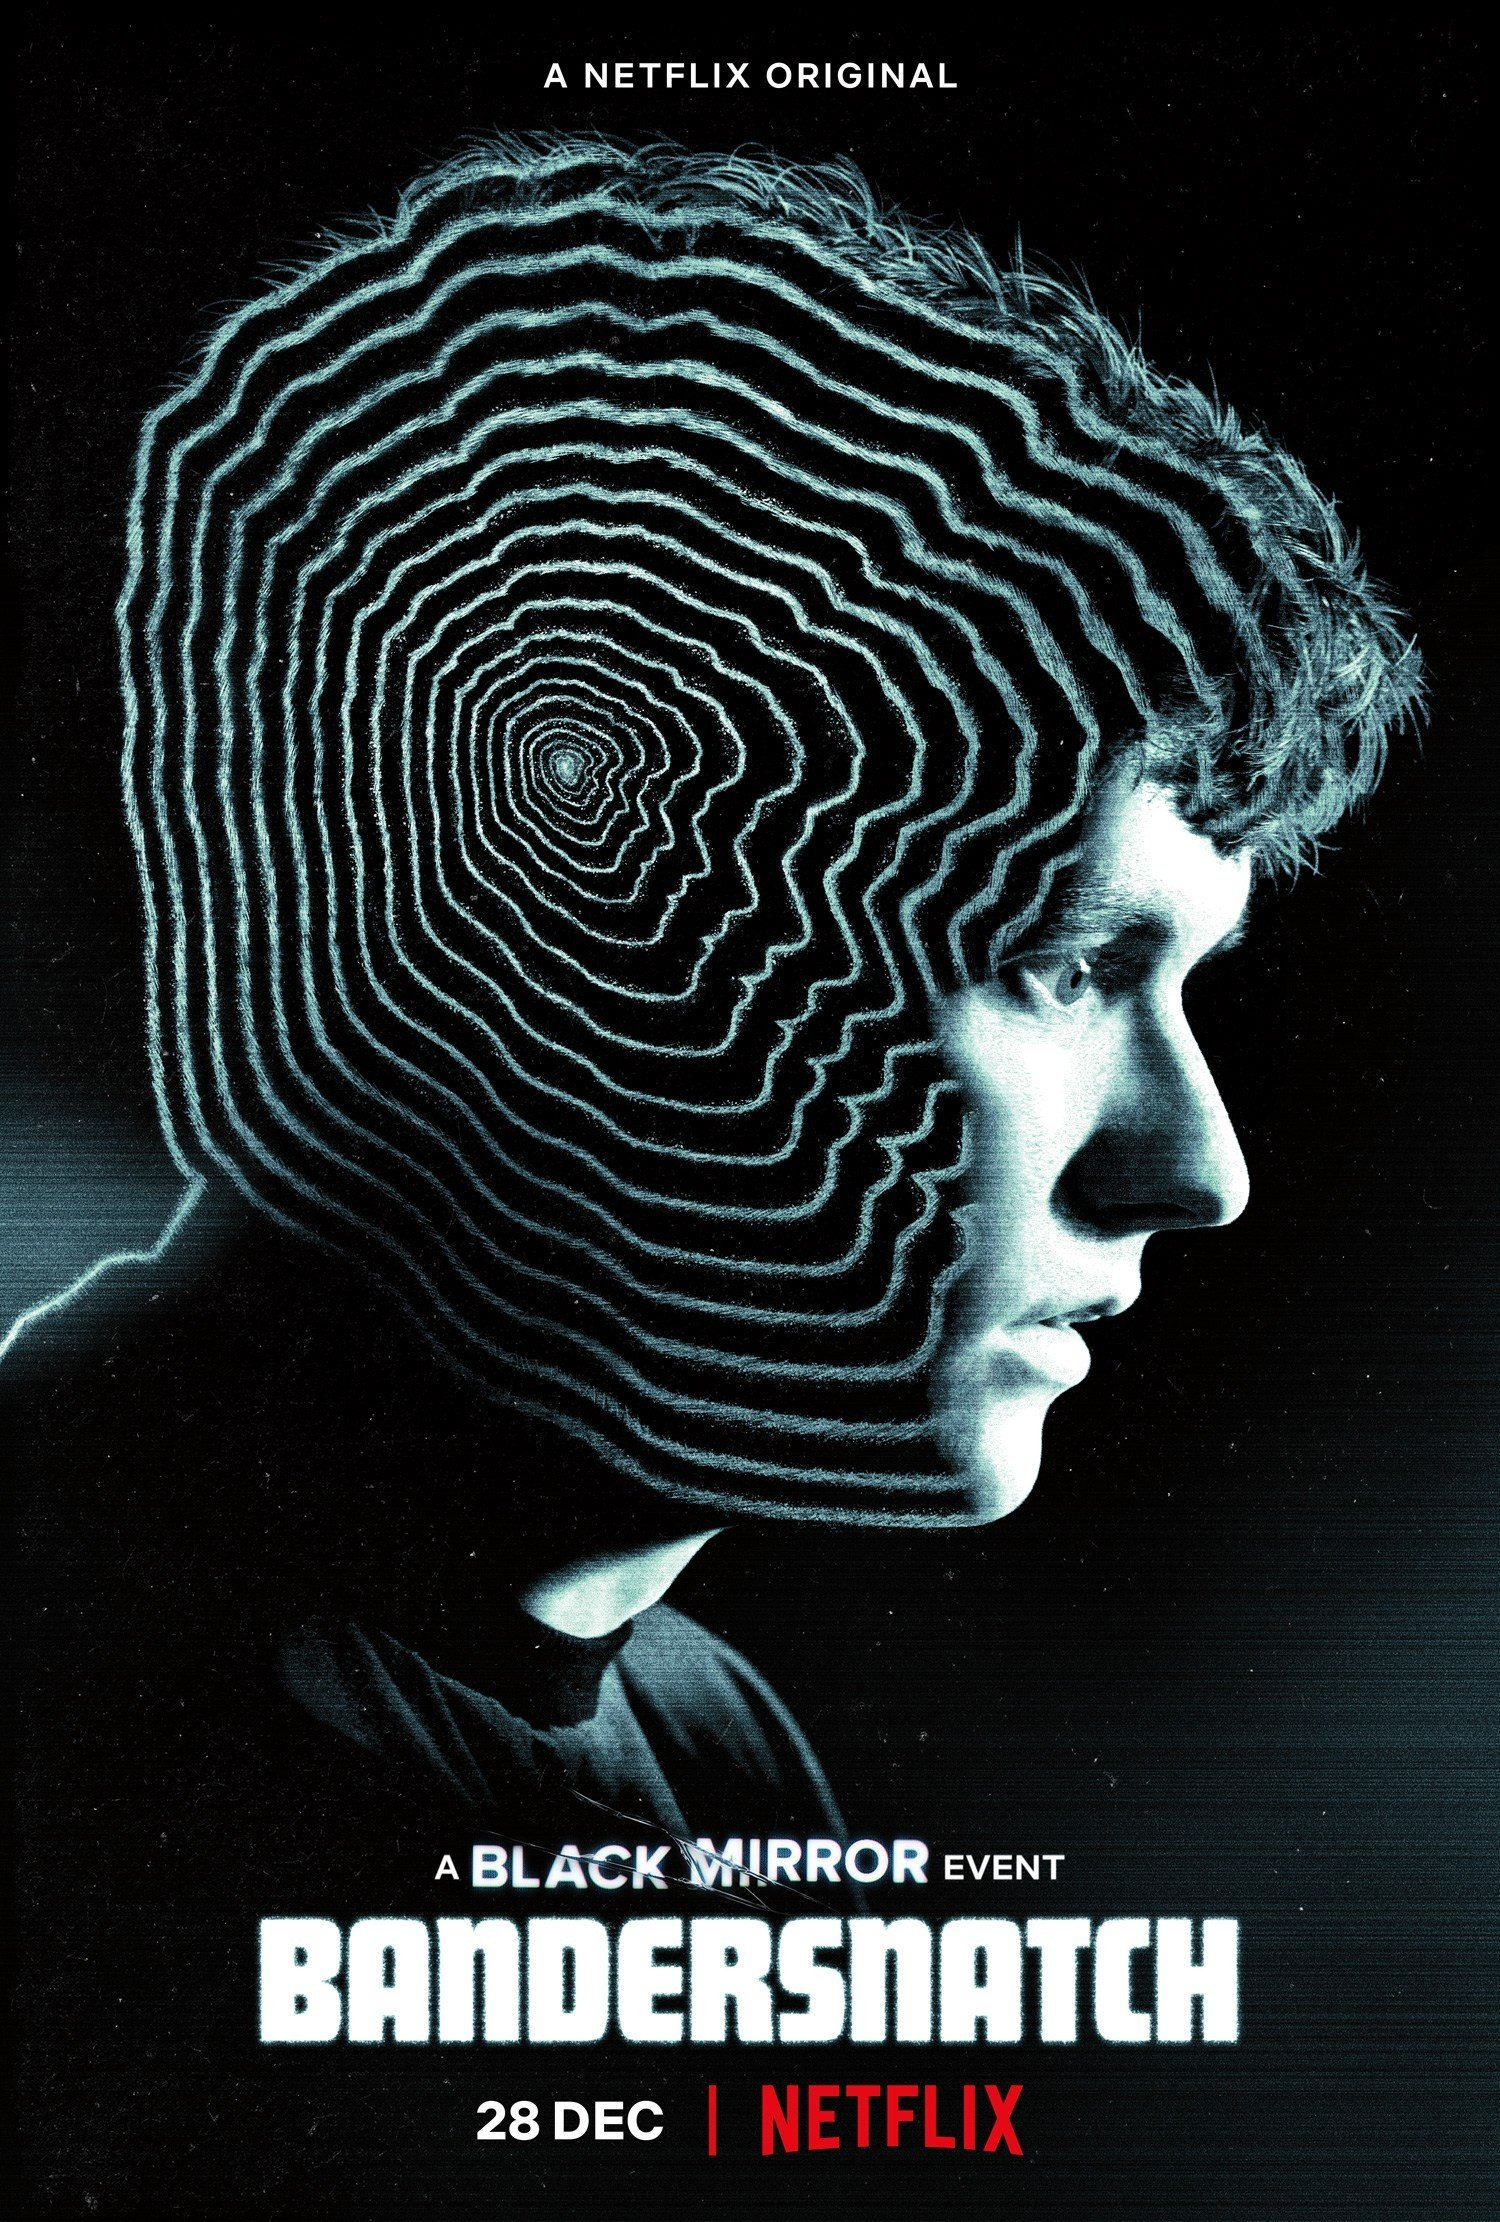 Black Mirror: Bandersnatch 黑镜:潘达斯奈基